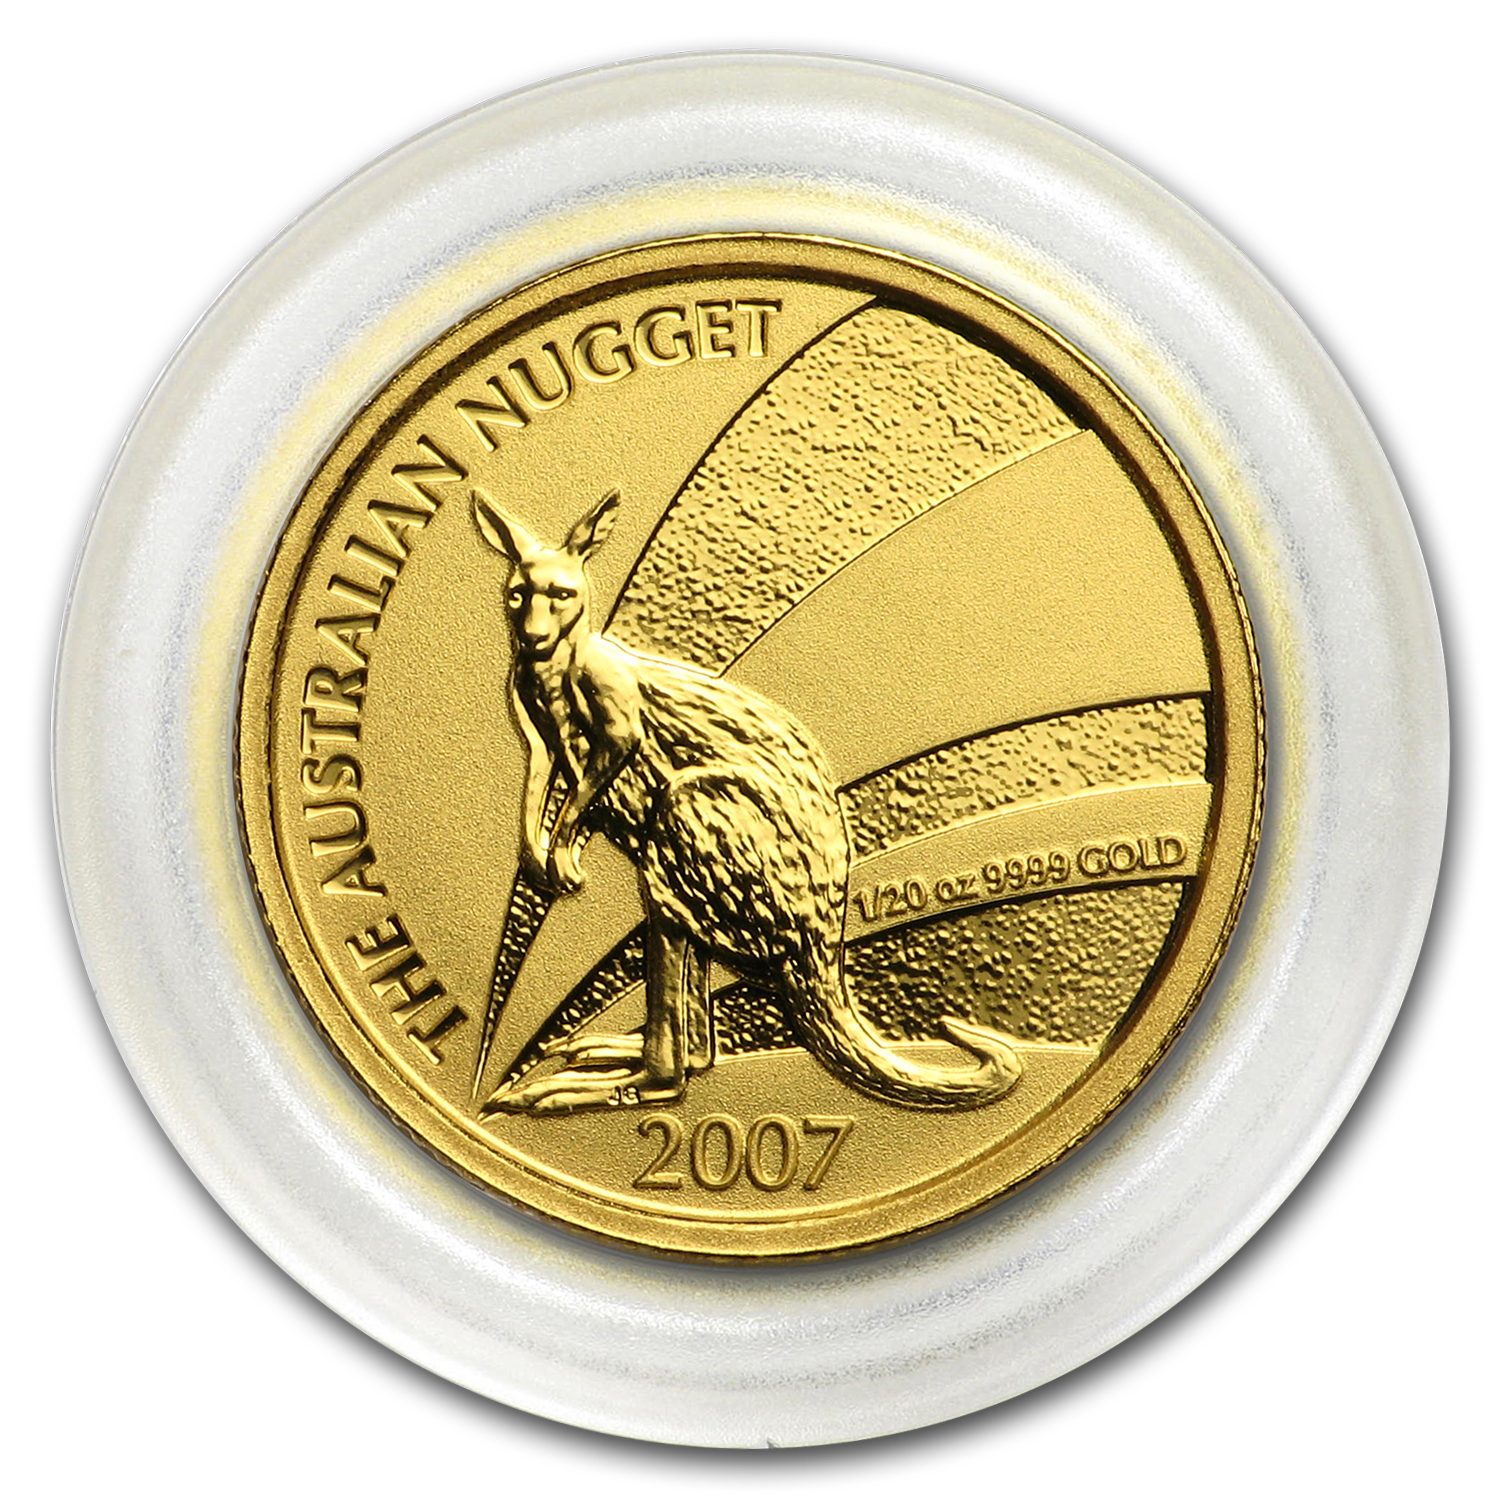 2007 1/20 oz Australian Gold Nugget